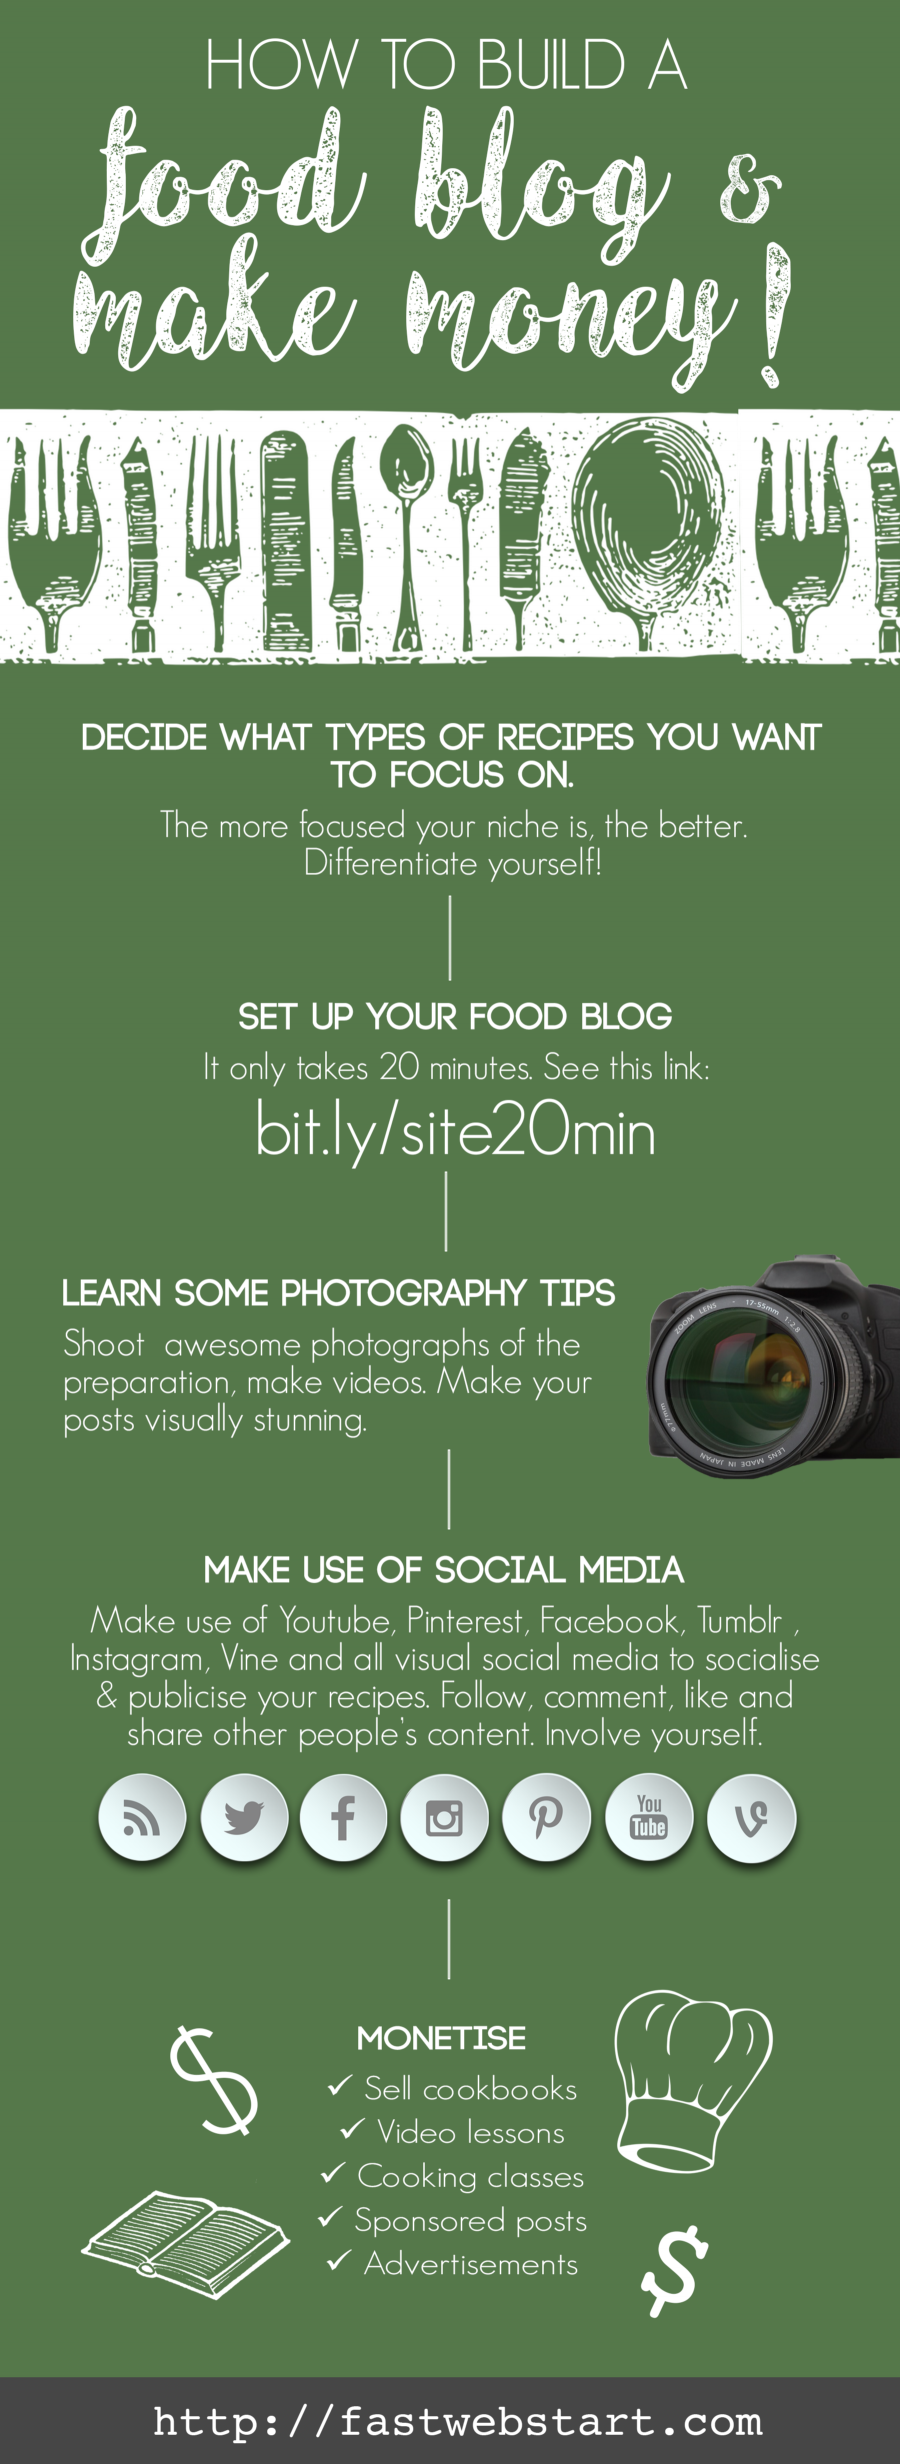 how to build a food blog and make money